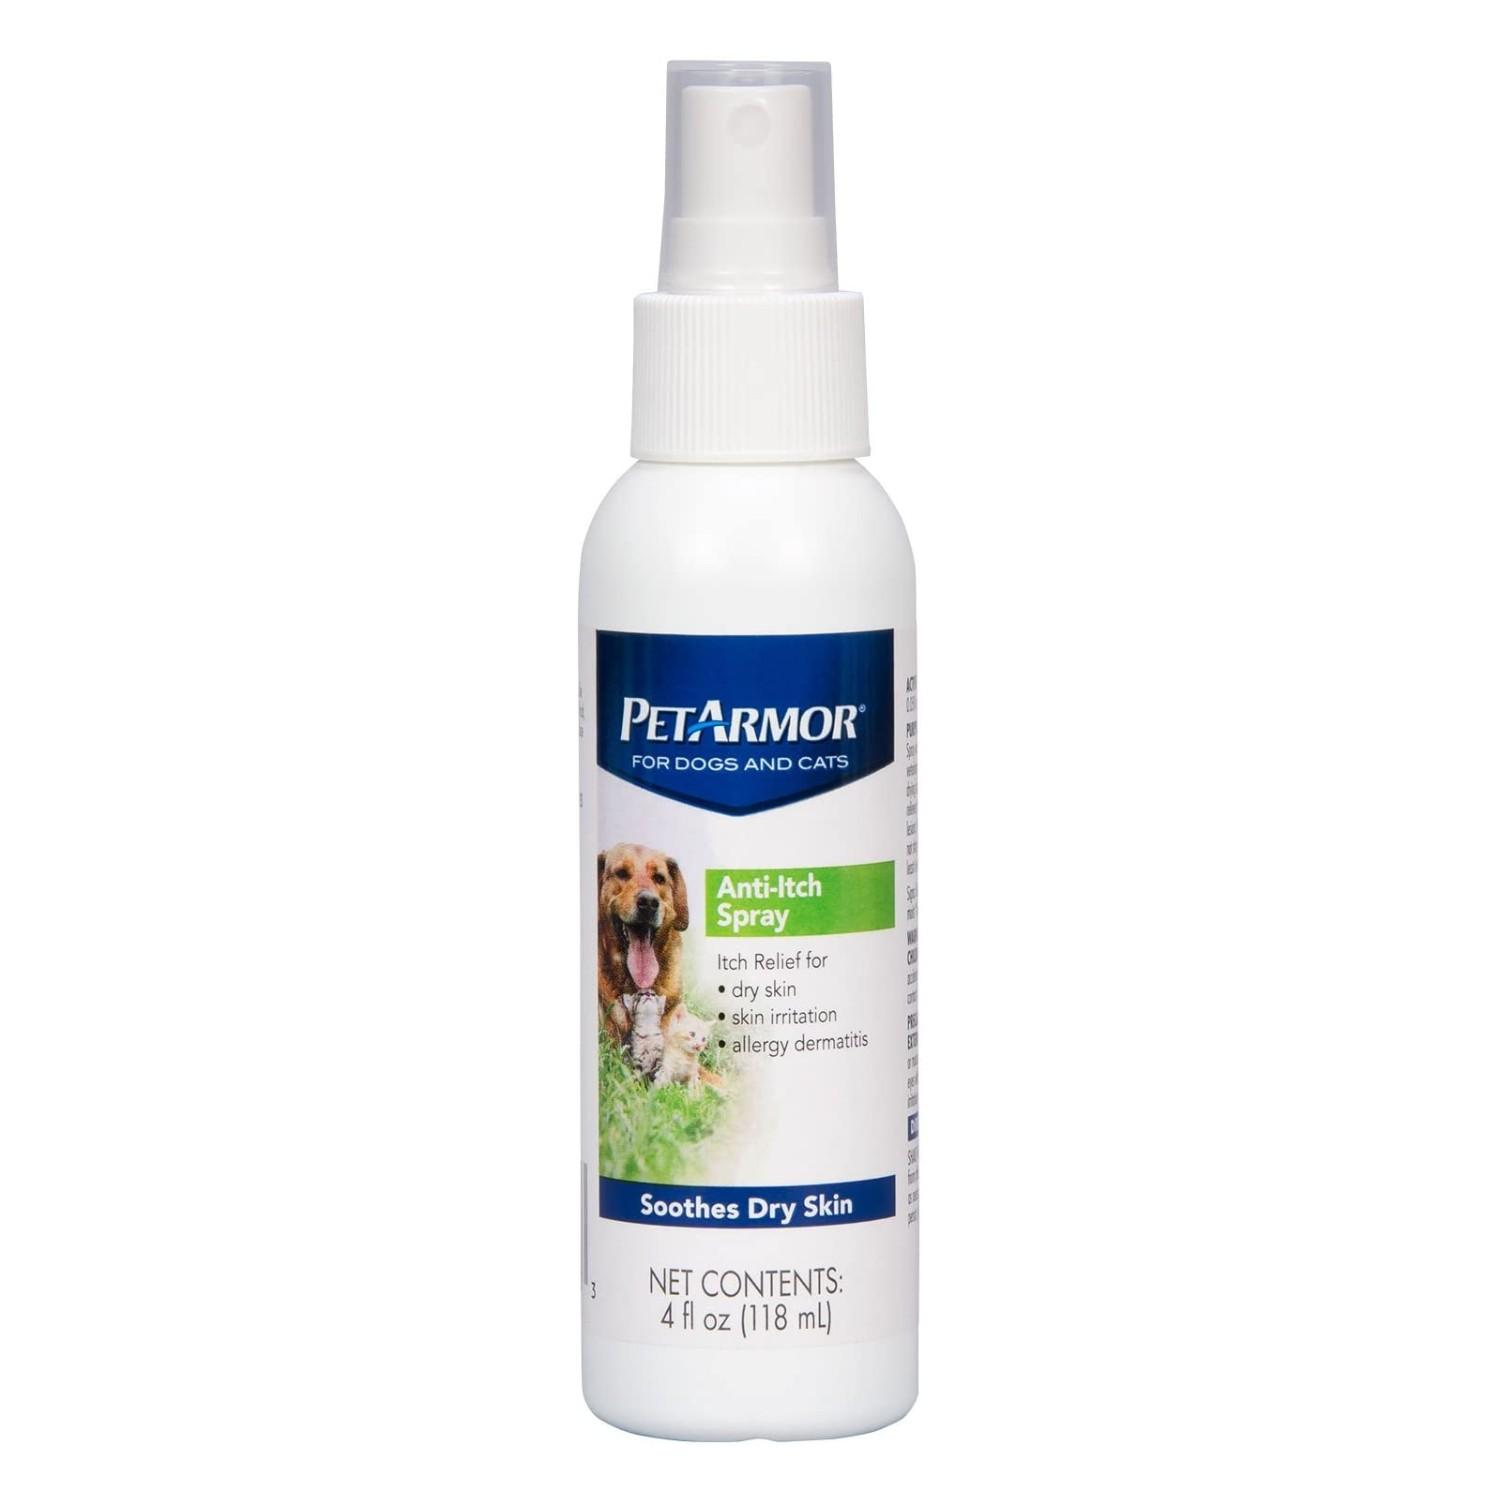 PetArmor Anti-Itch Spray for Dogs and Cats